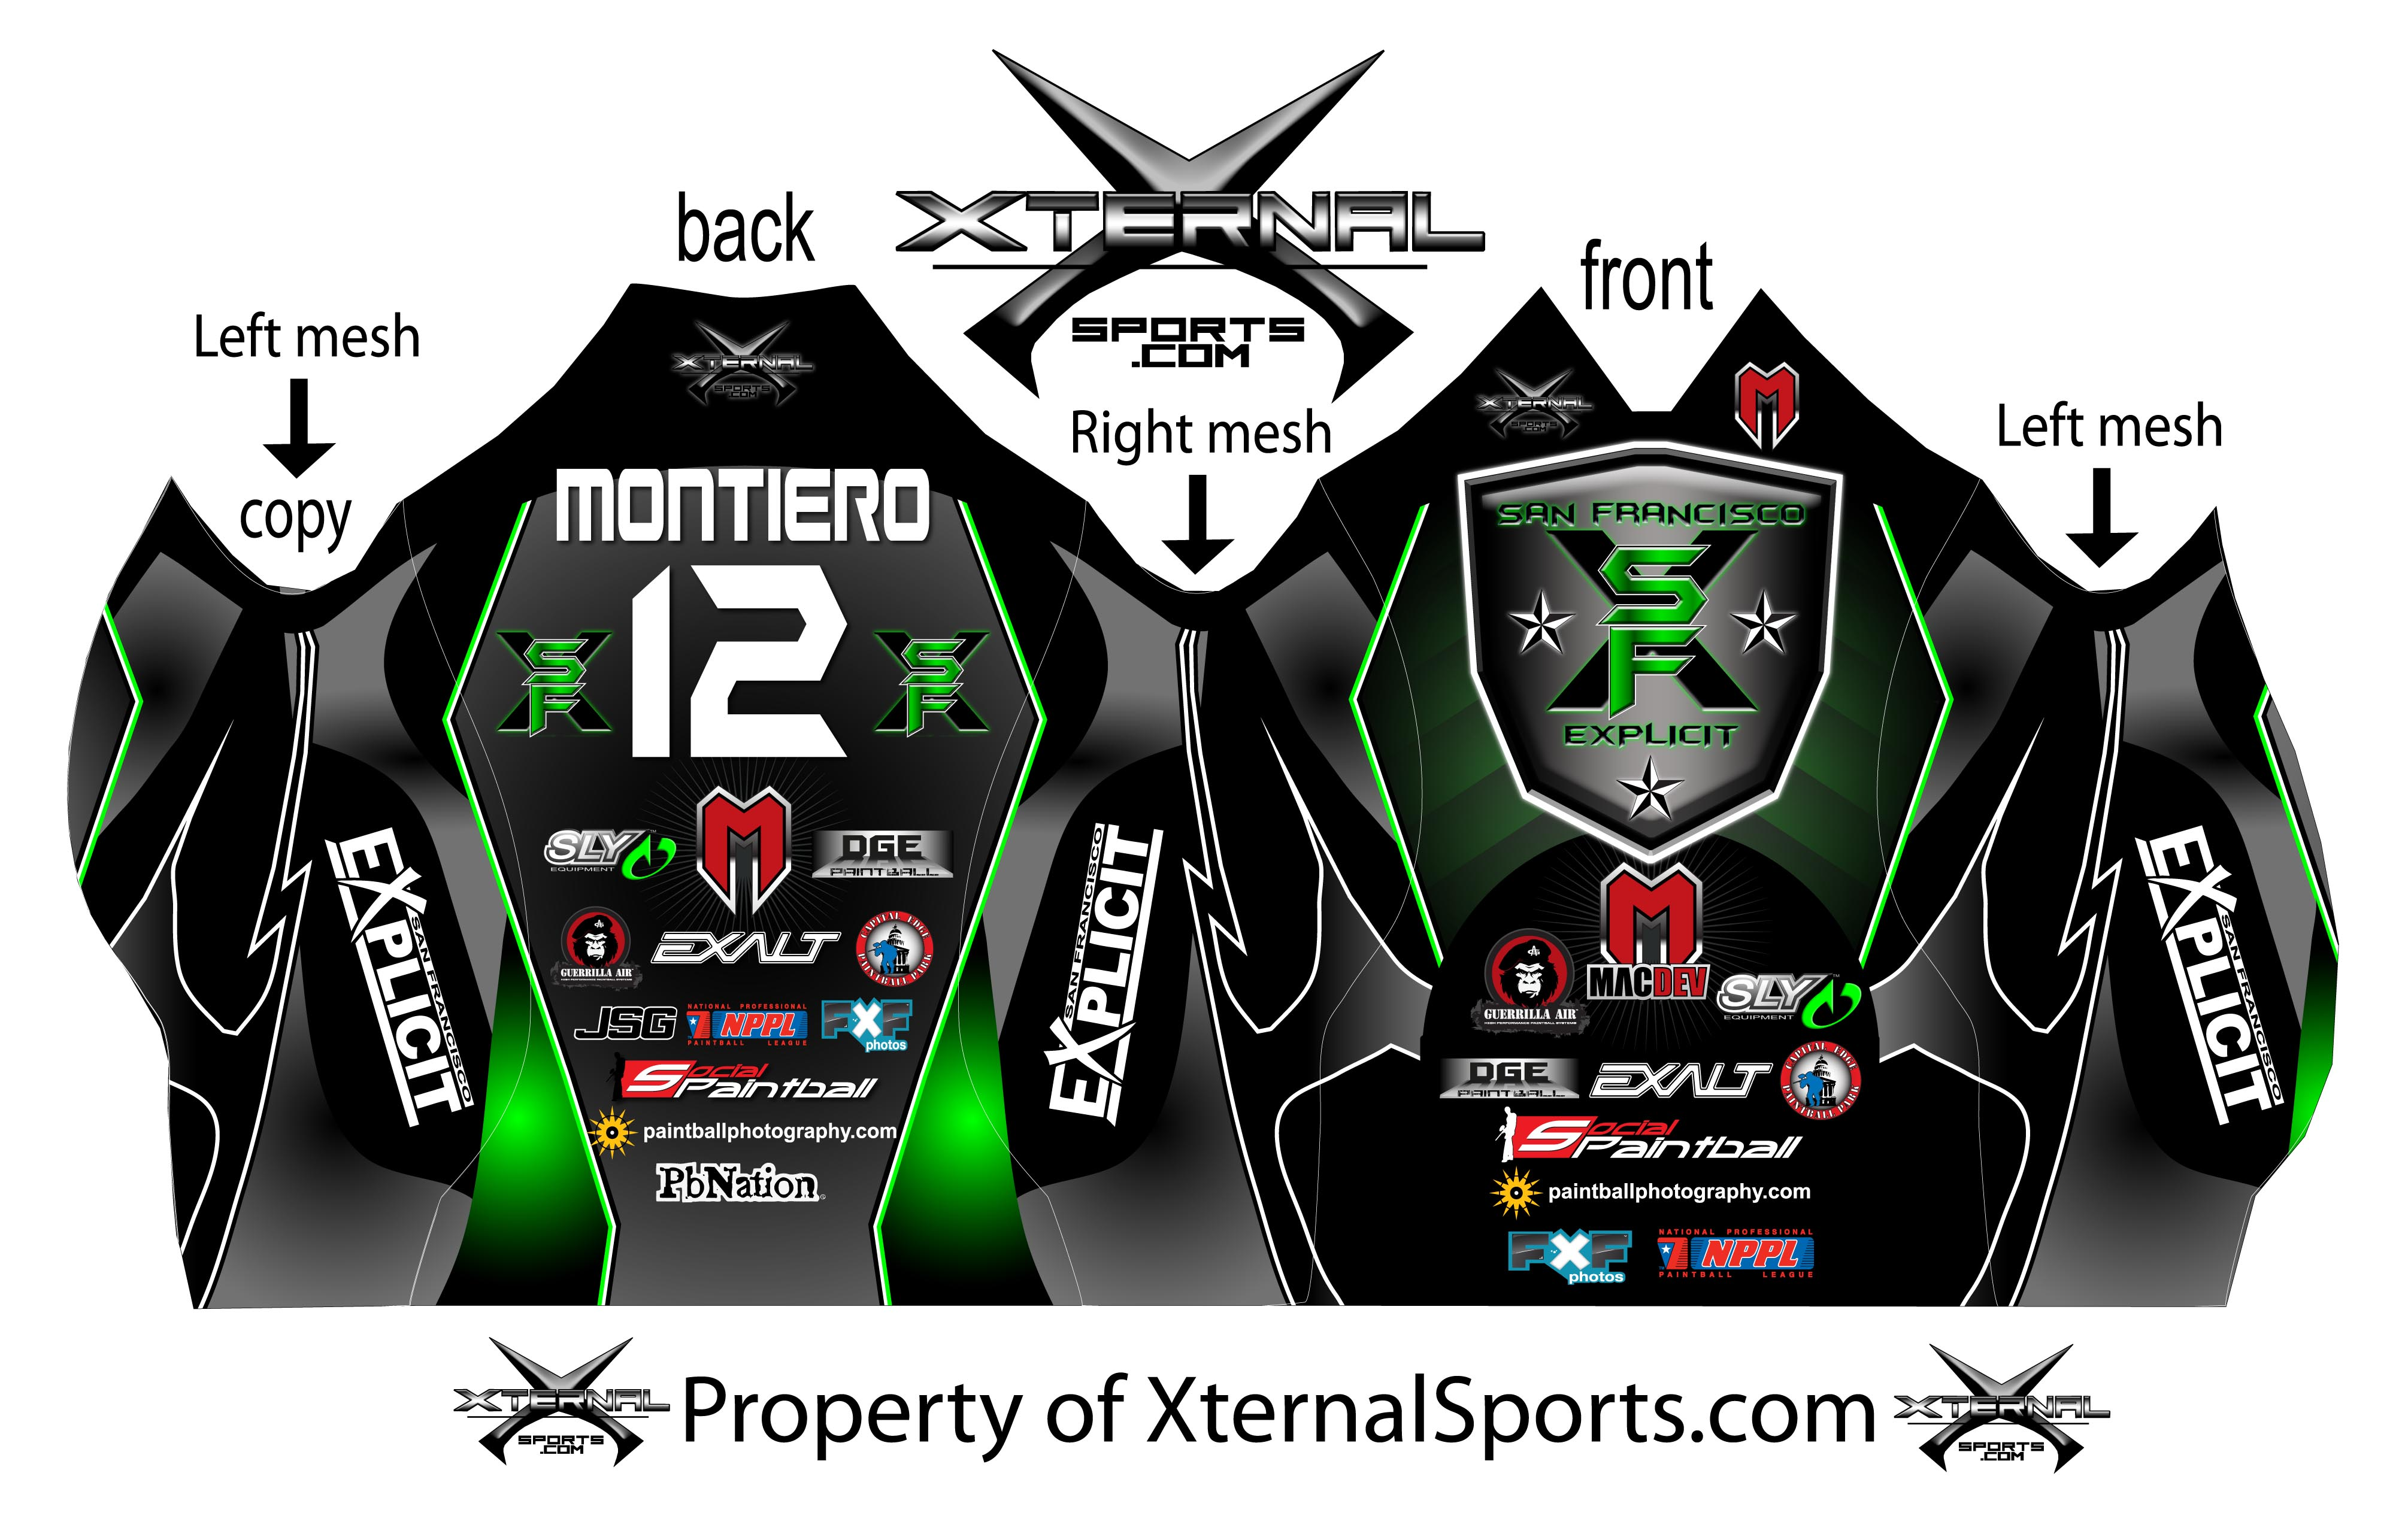 Exclusive: 2012 San Francisco Explicit Paintball Jersey Released